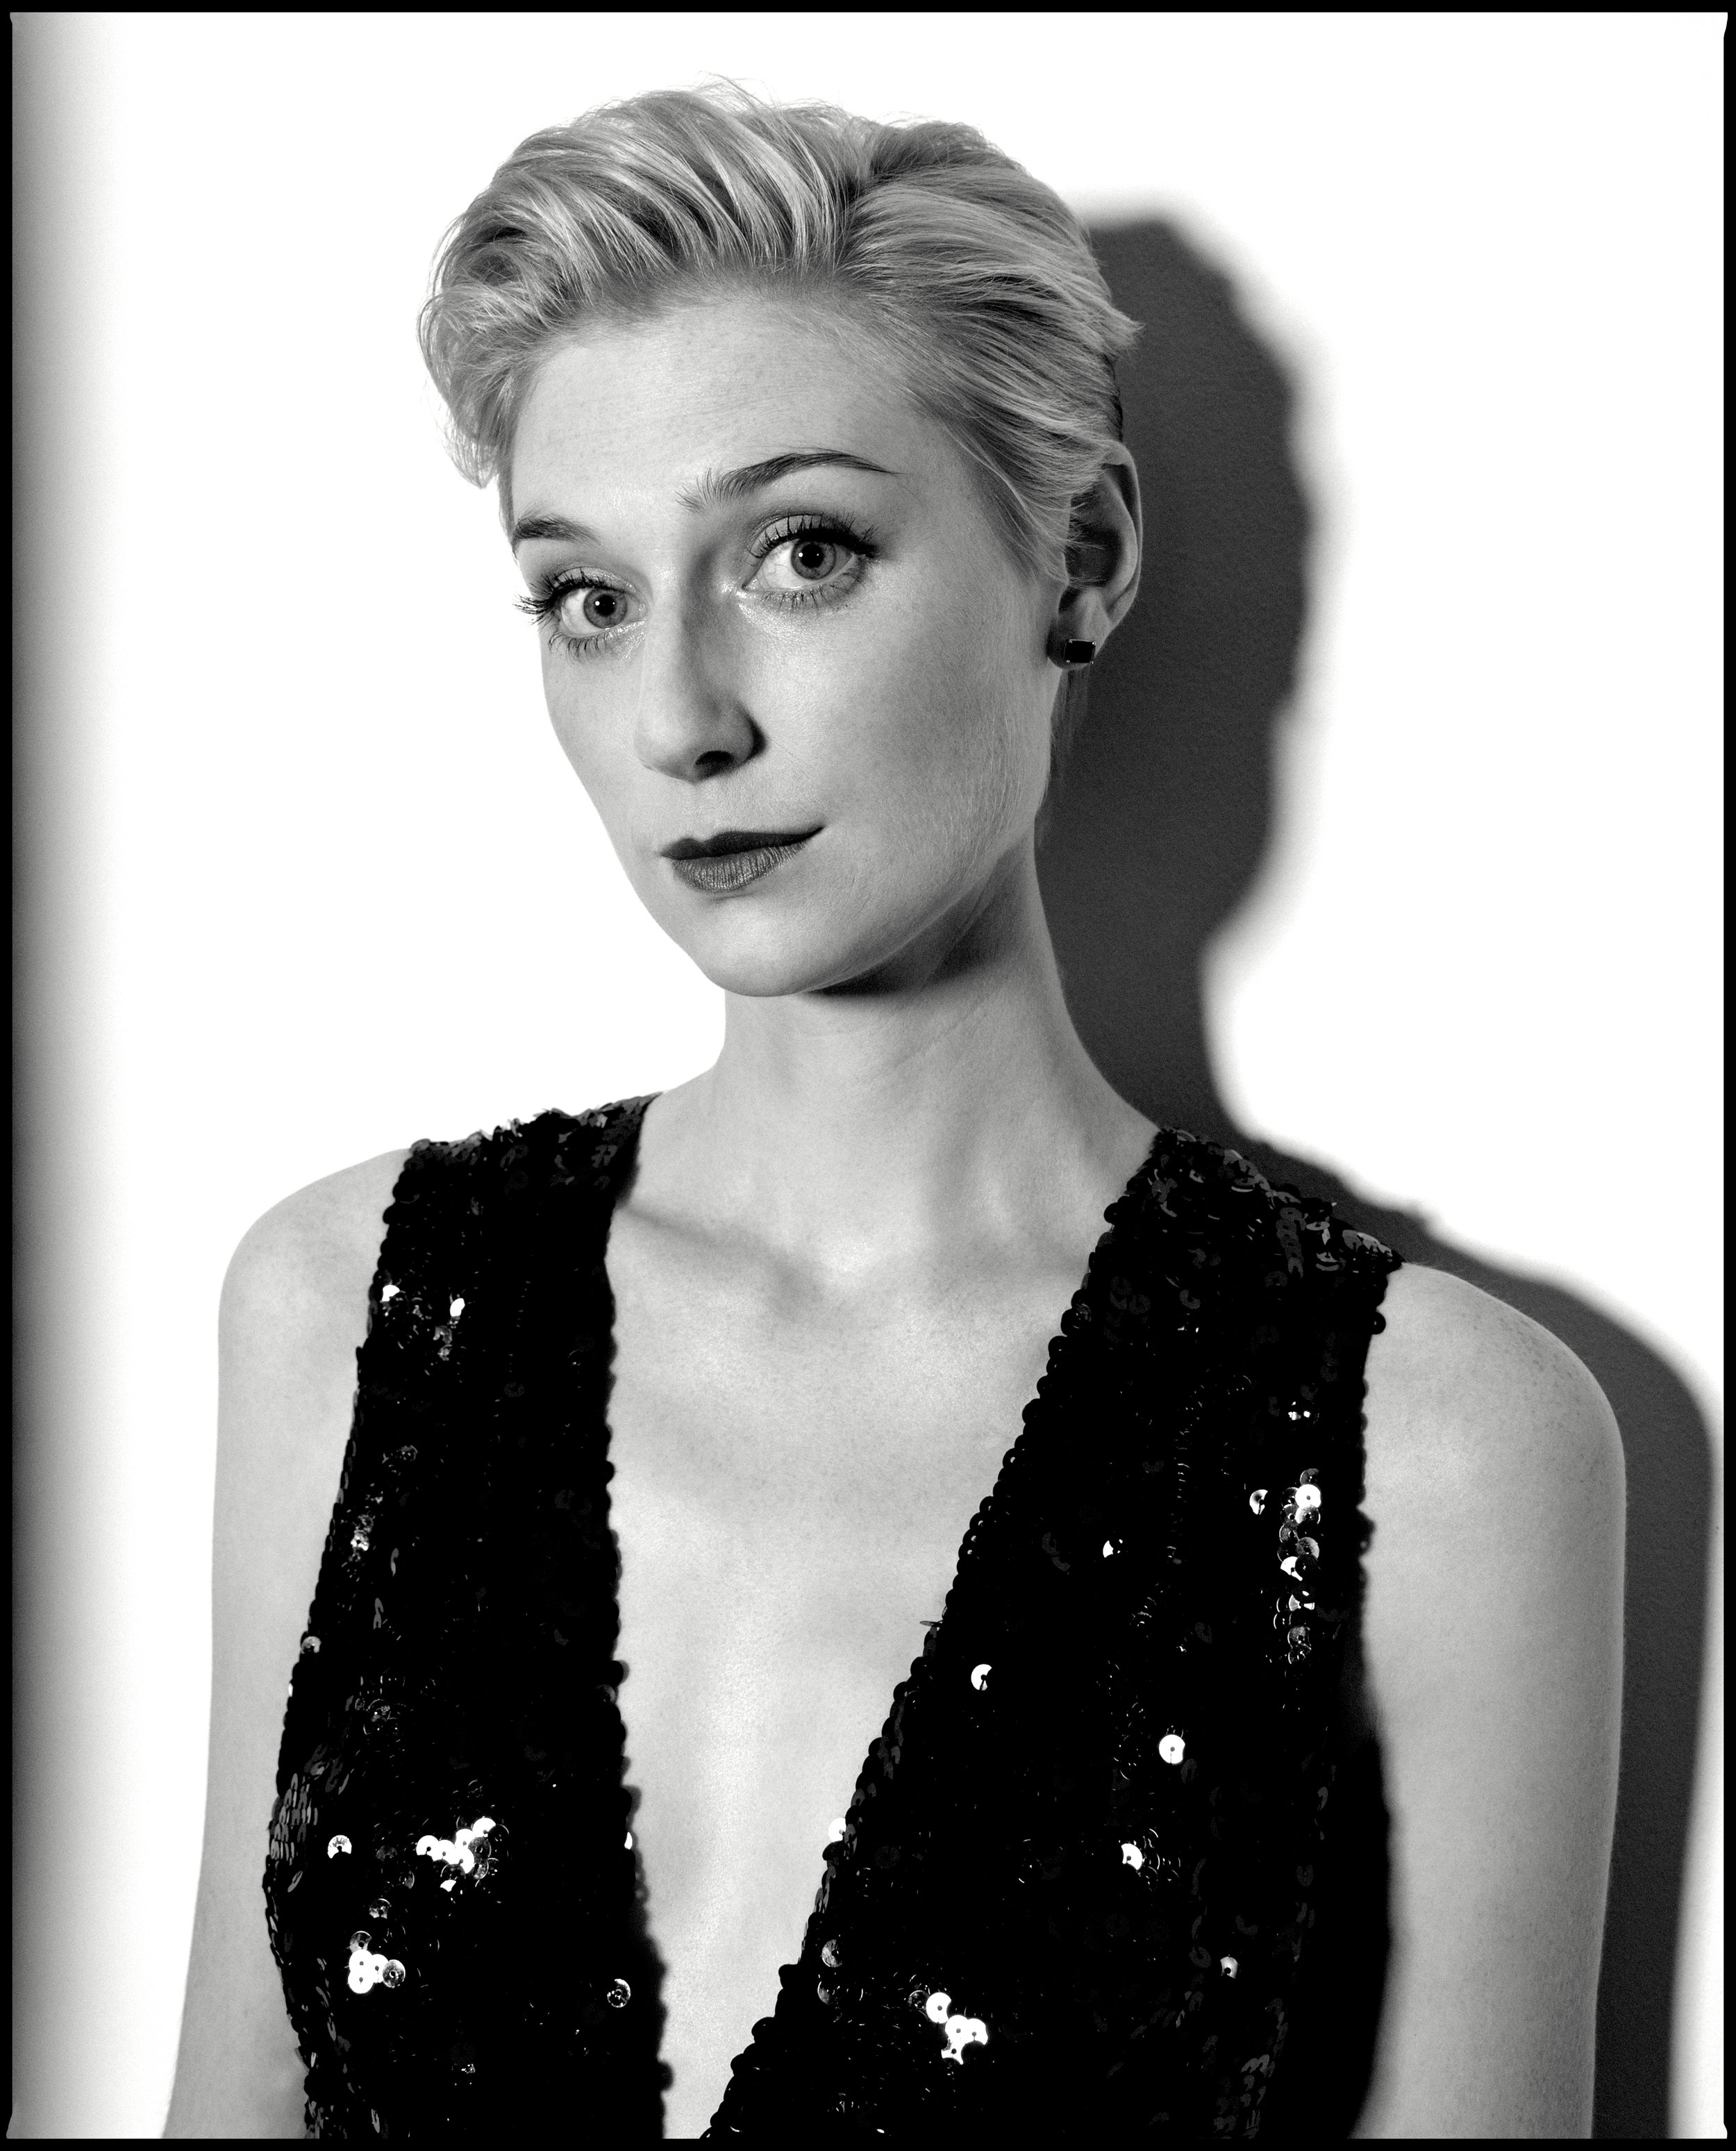 Elizabeth Debicki - Actress